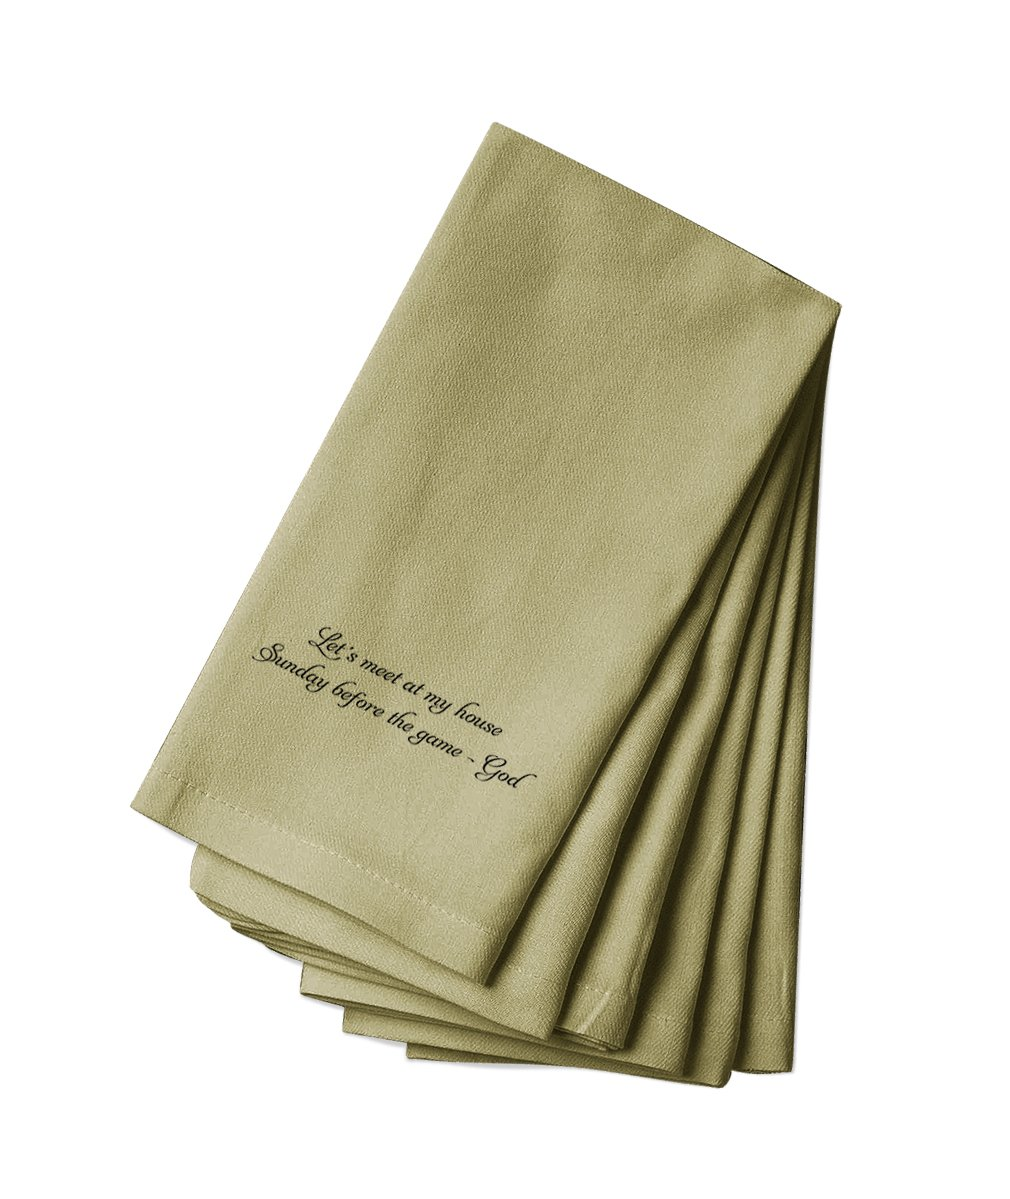 Style in Print Canvas Napkin Set Of 4 Let'S Meet At My House Sunday Before Game